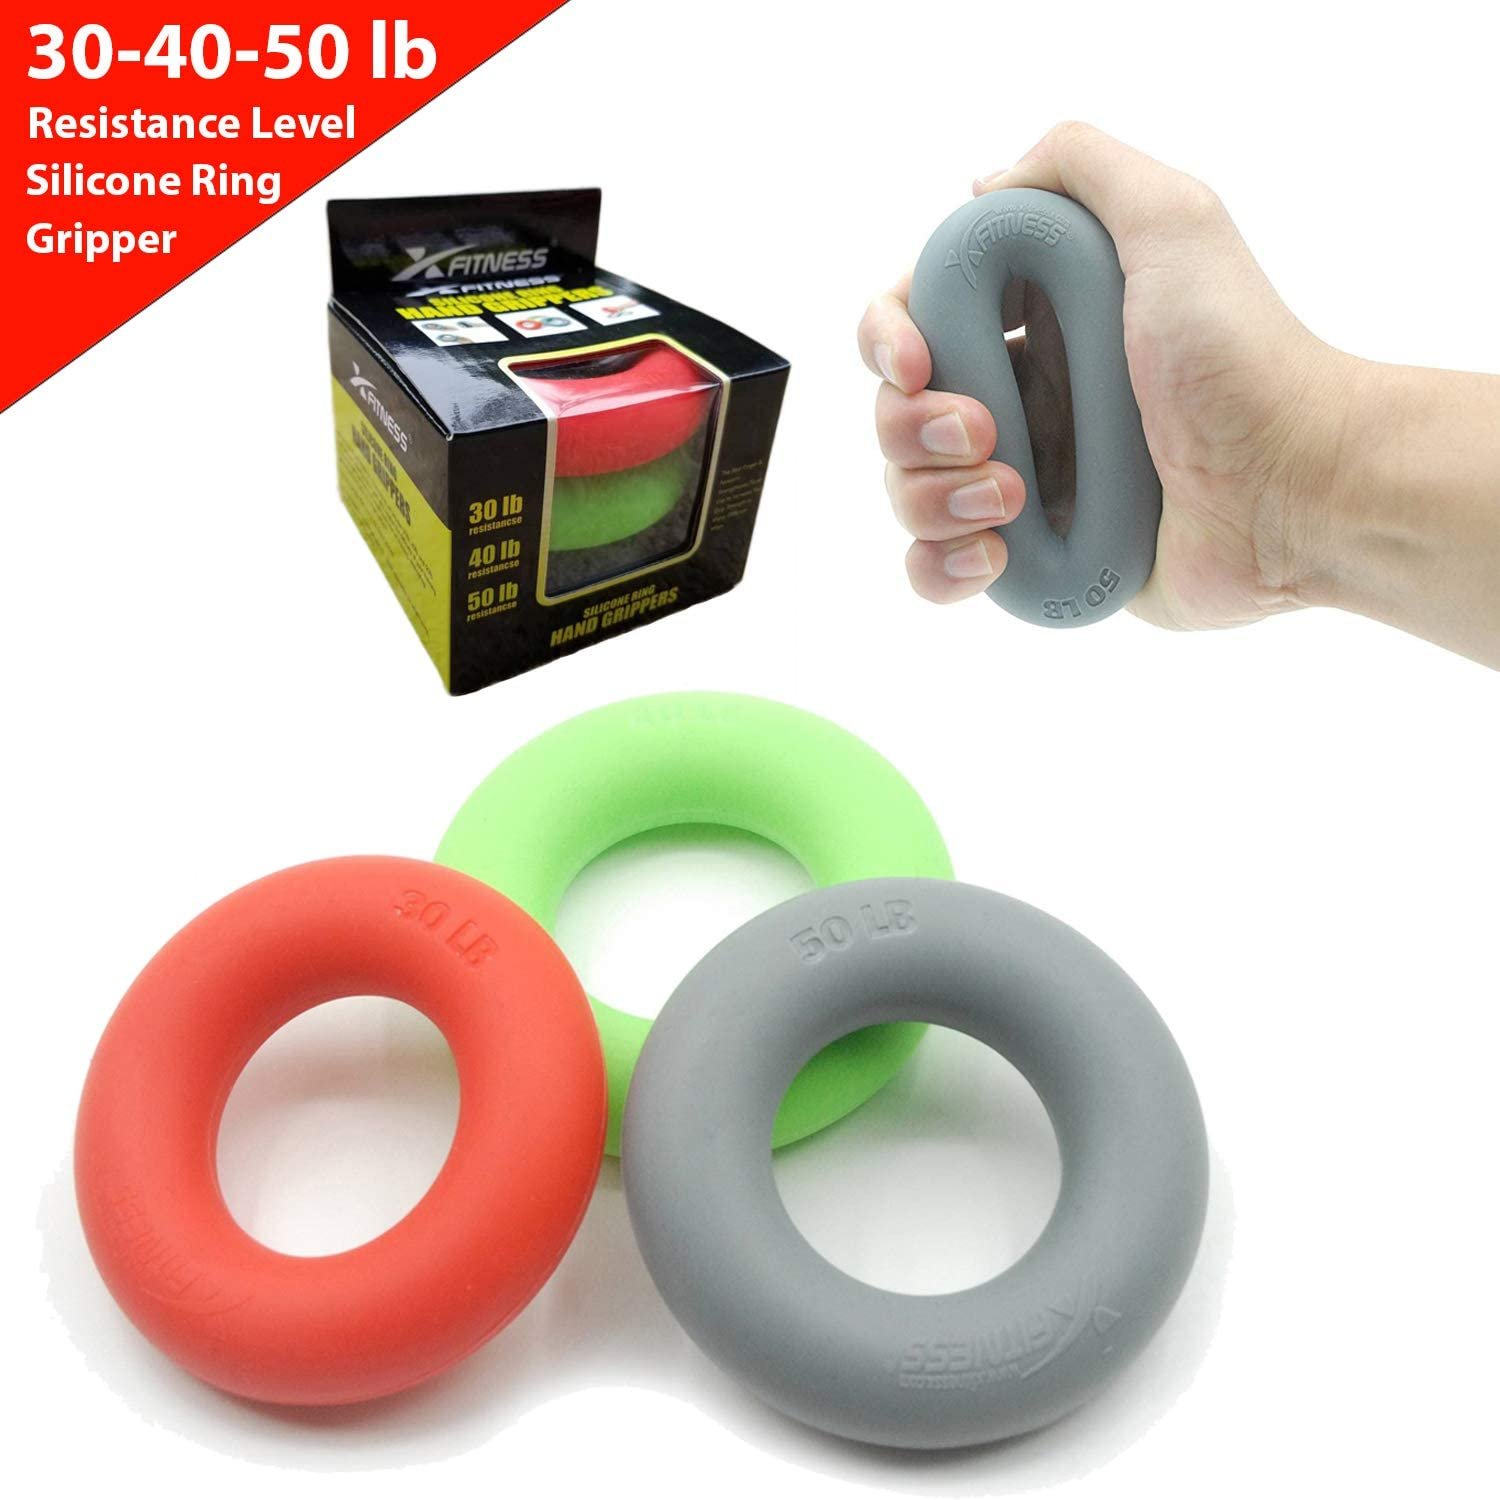 xFitness Hand Grip A Hand Forearm Exerciser and Strengthener – Set of 3 Level Resistance – Extension, Crushing Pinch Grip Training Solution – Best Hand Grips on The Market – 30 40 50 lbs Set